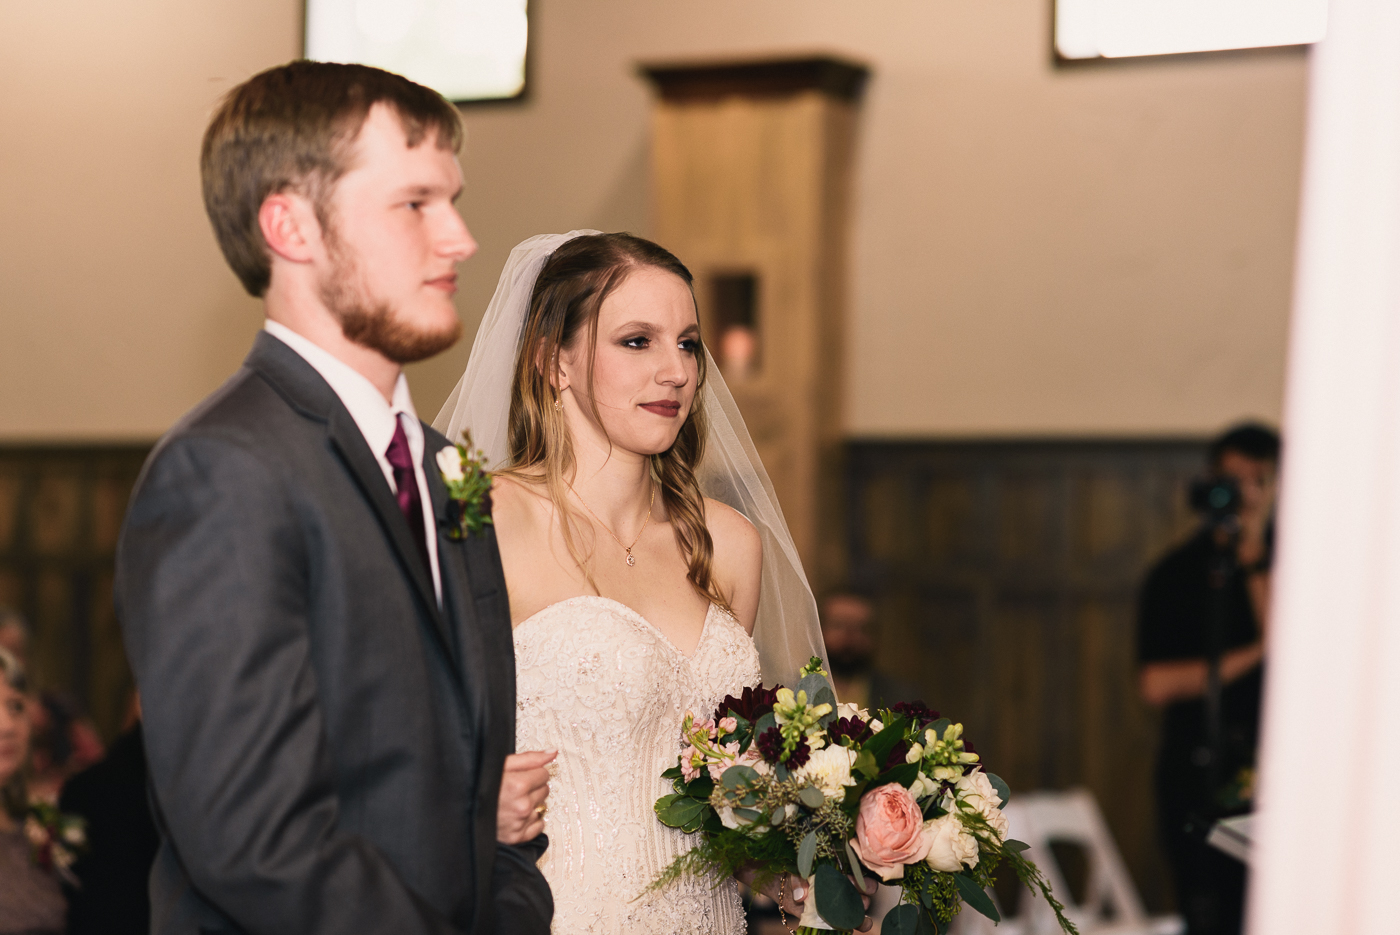 wedding ceremony bride and groom veil bouquet at the altar